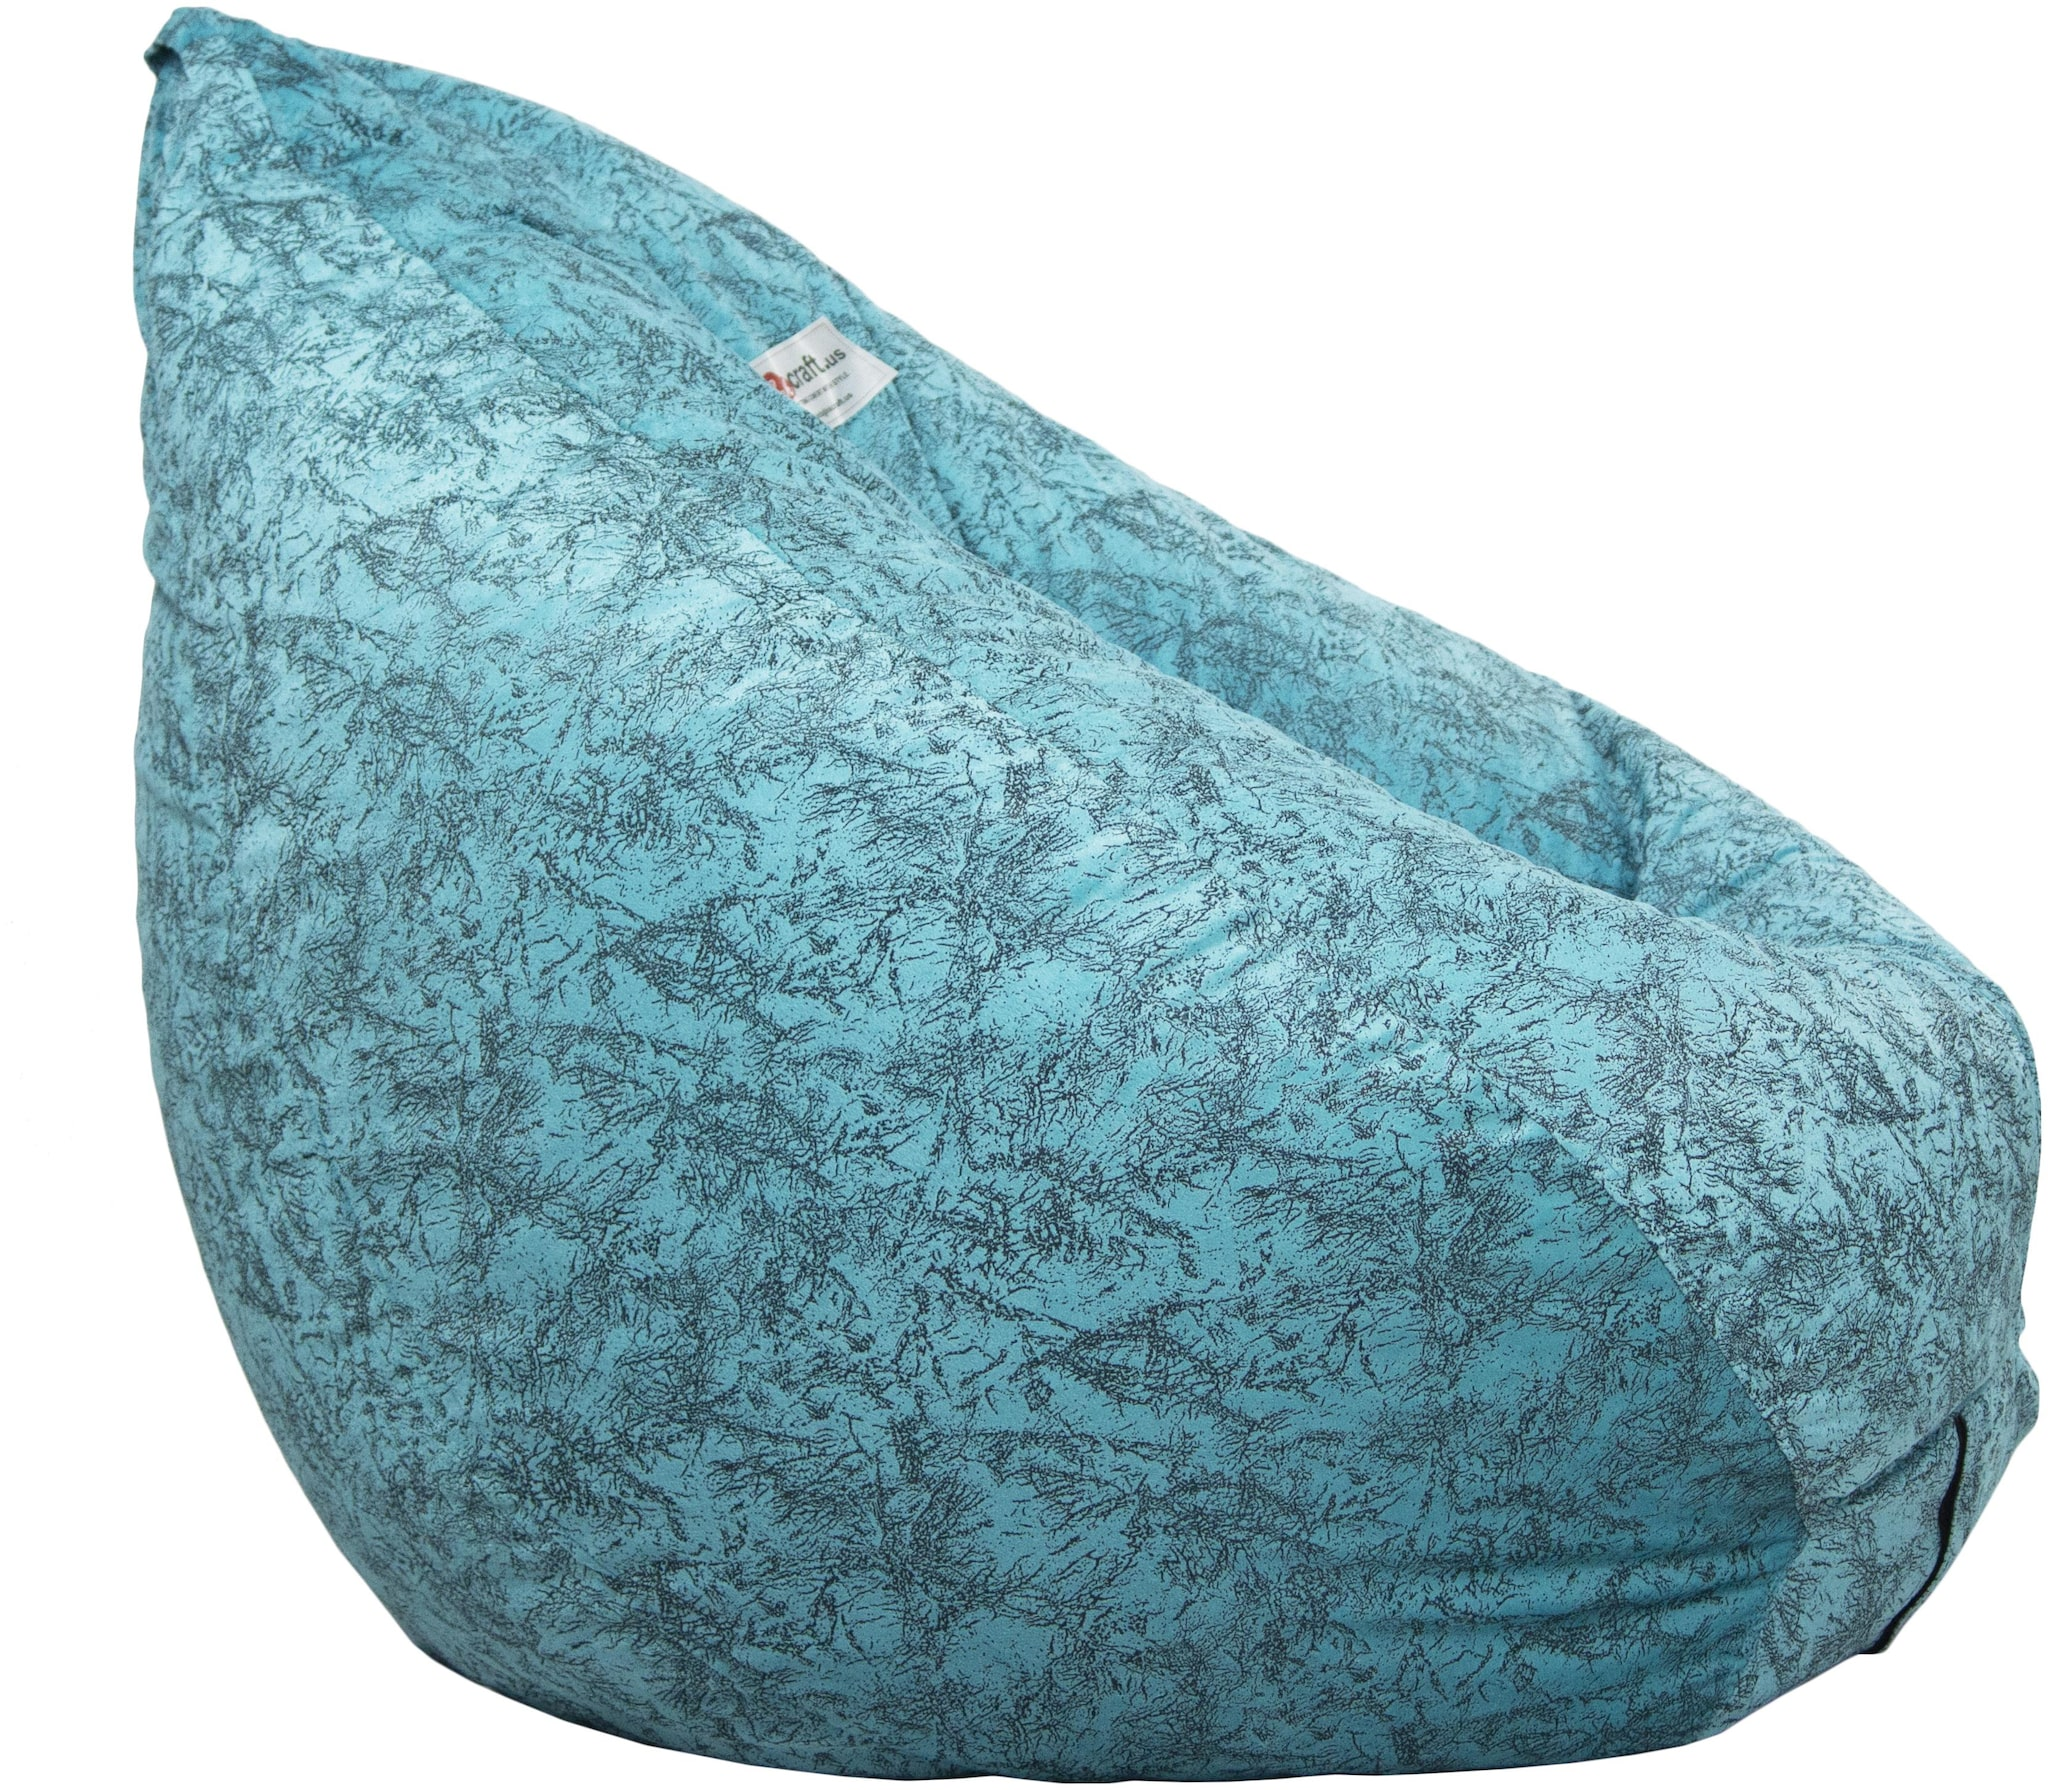 Printed Bean Bag Chair: Large Beanbag Chairs filled with beans for Kids,...